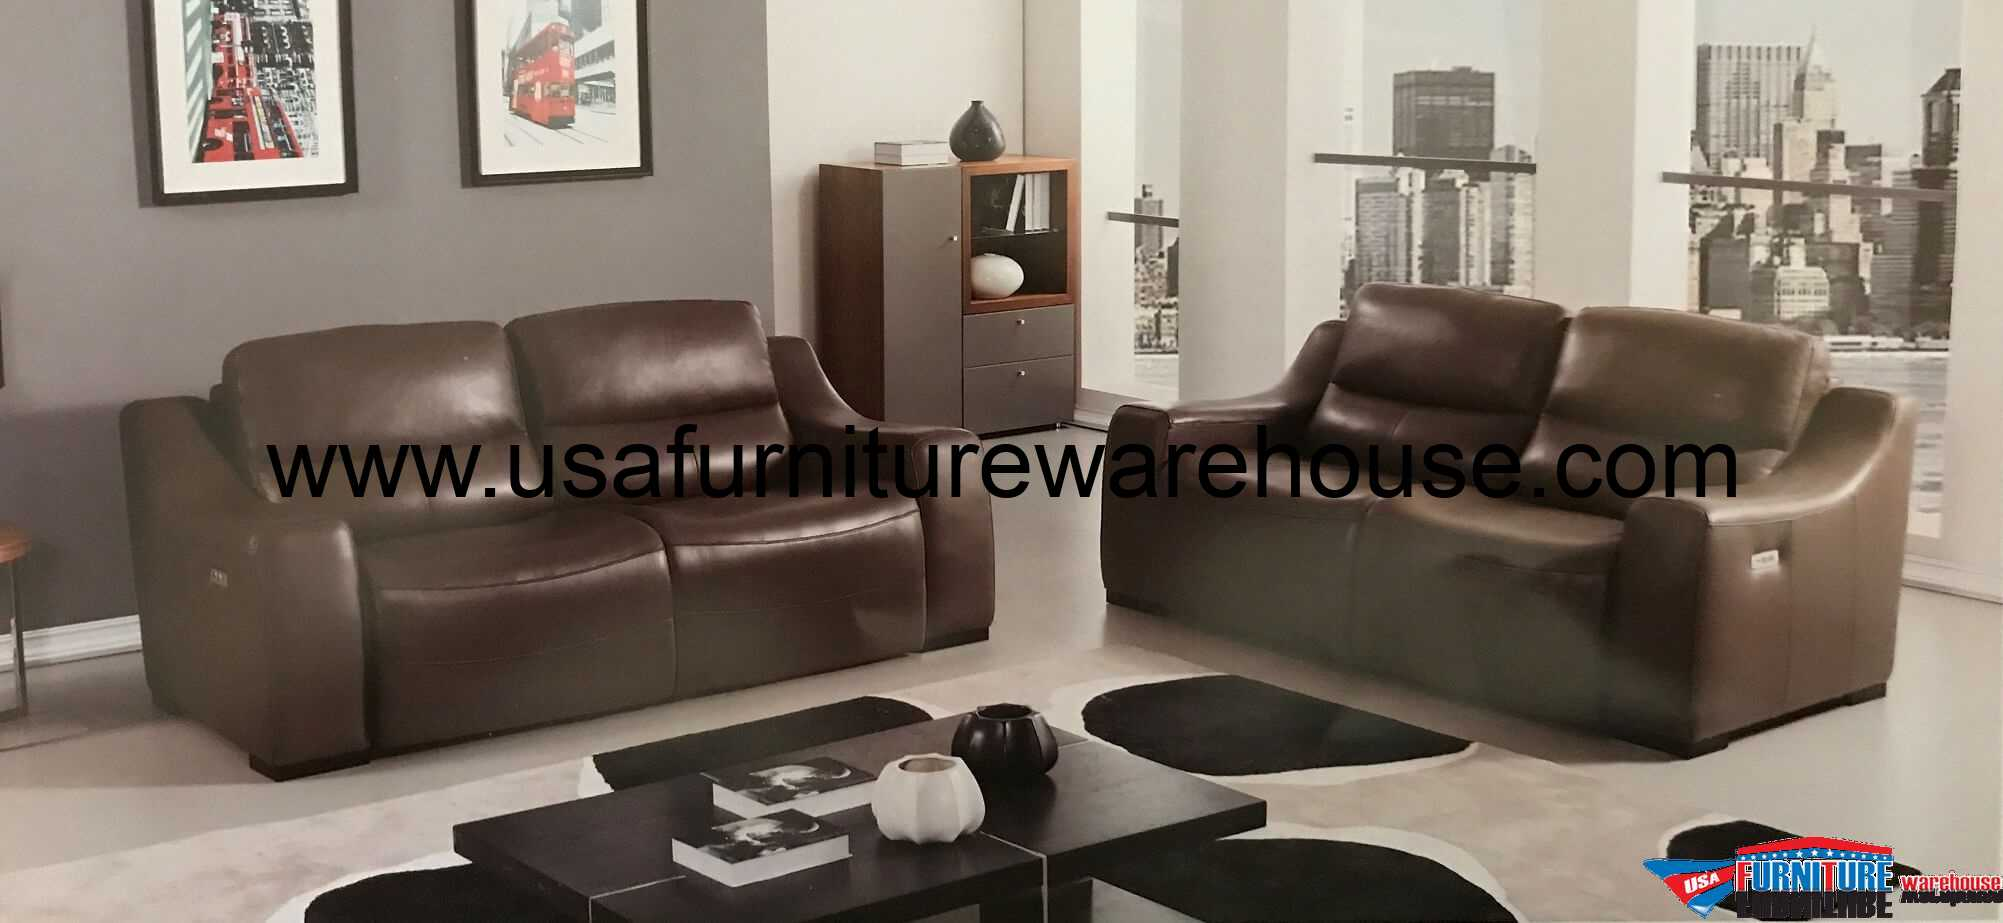 italian leather recliner sofa set futon bed mattress replacement 2 piece avana full taupe power